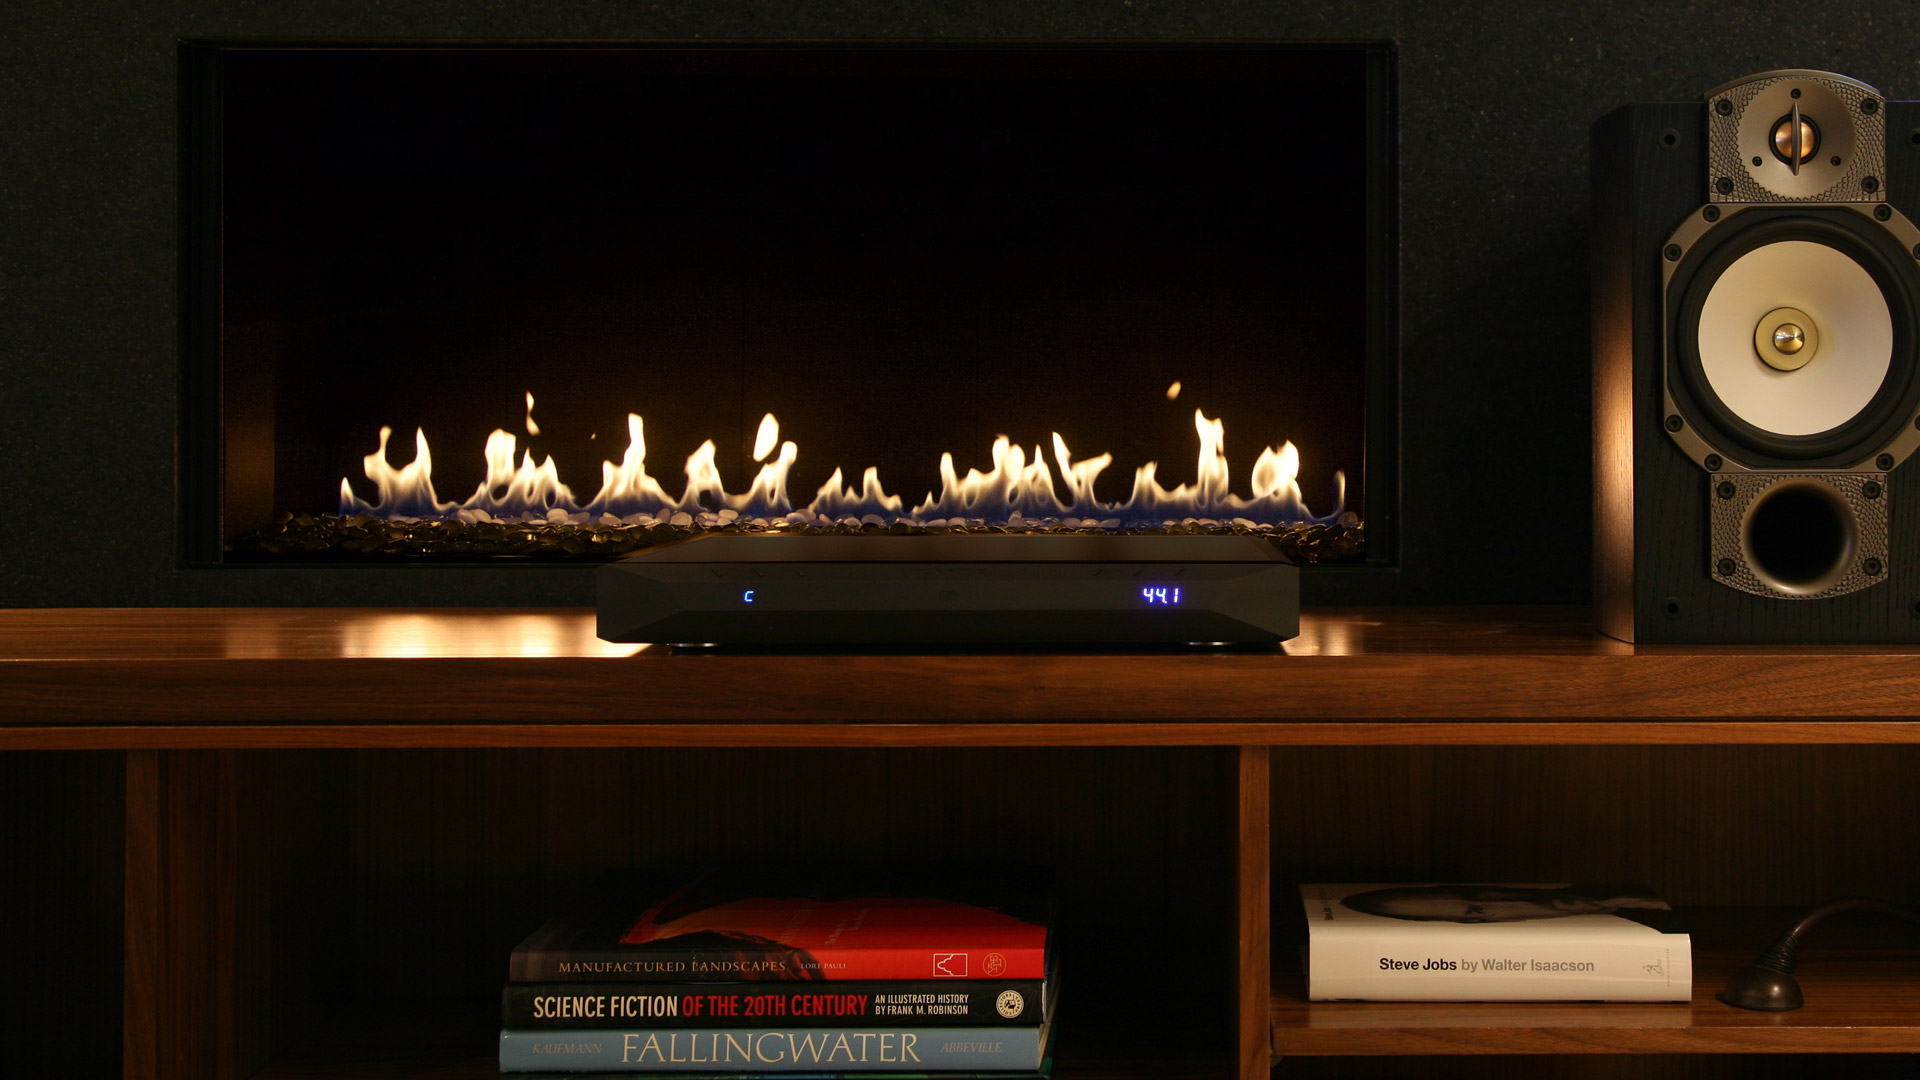 NuPrime - IDA-16 - Integrated - Amplifier - DAC - Singularity Audio Imports - Lifestyle - Coffee - Fireplace